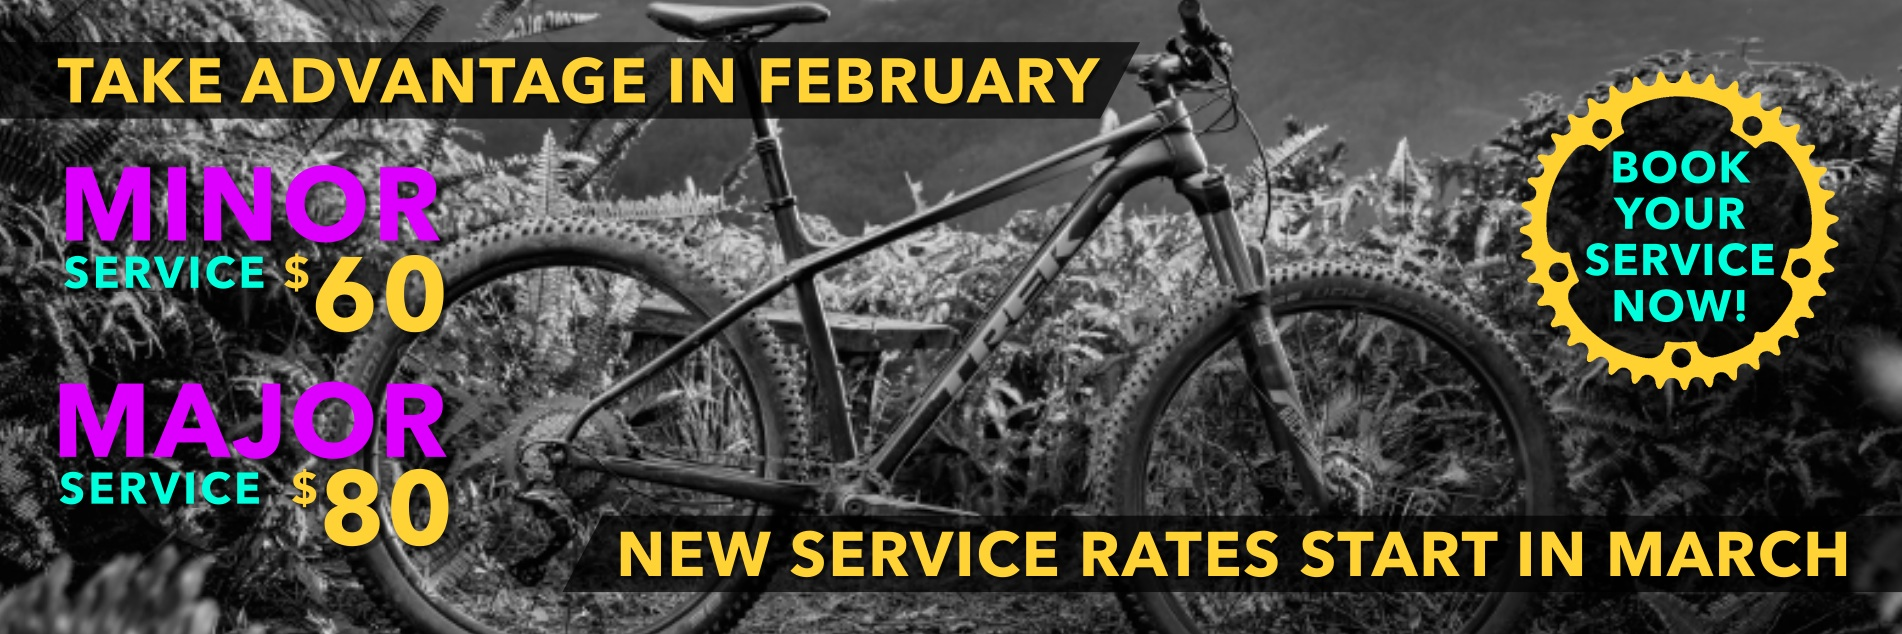 Take Advantage In February, New Service Rates Start In March - West Point Cycles